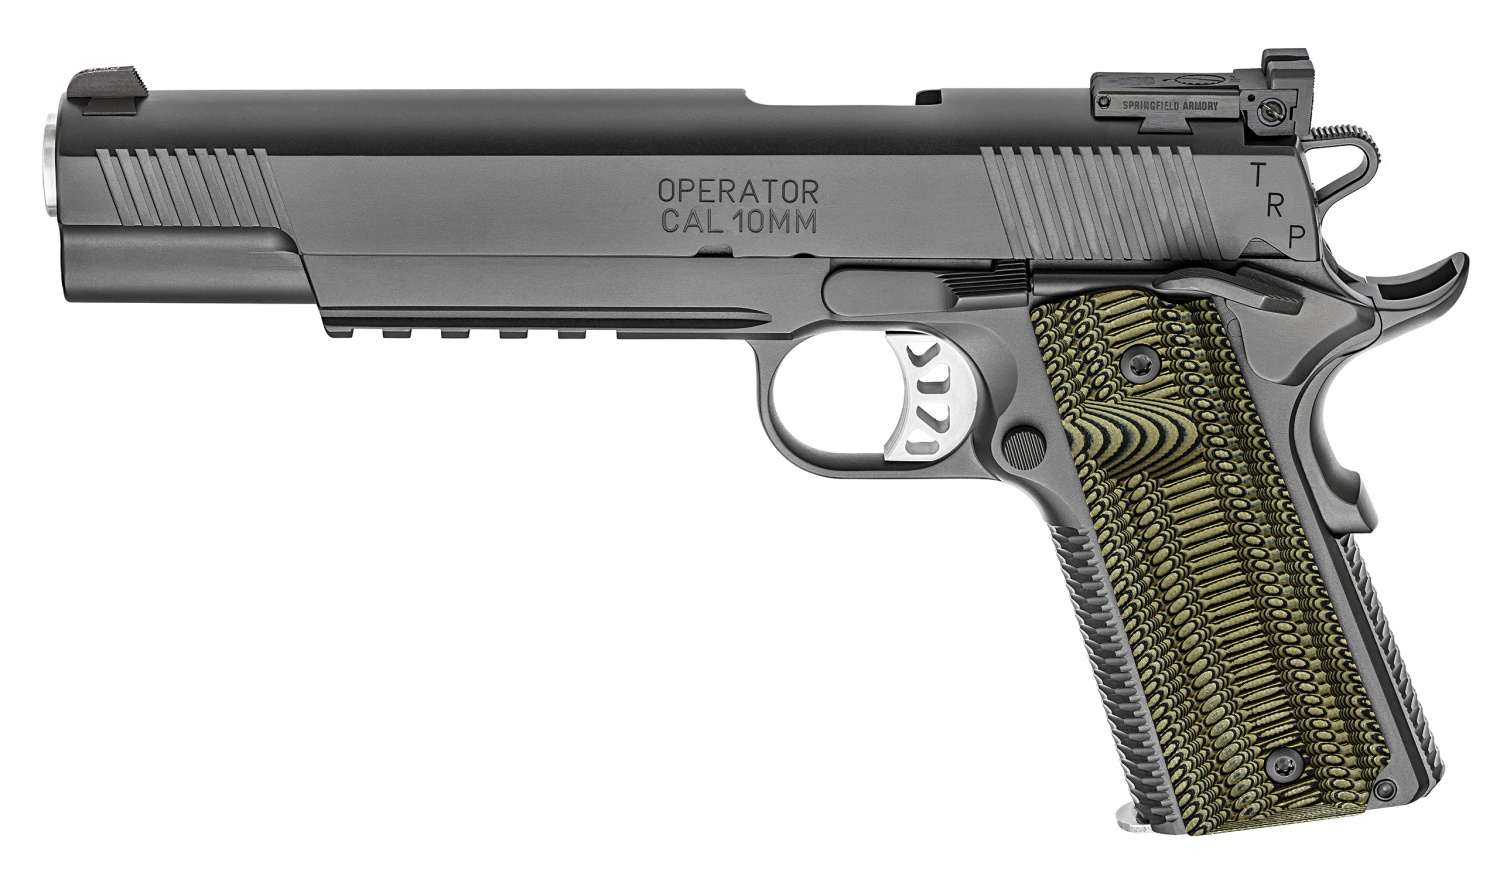 [Review] Springfield Armory TRP Operator 1911 in 10mm -The ...